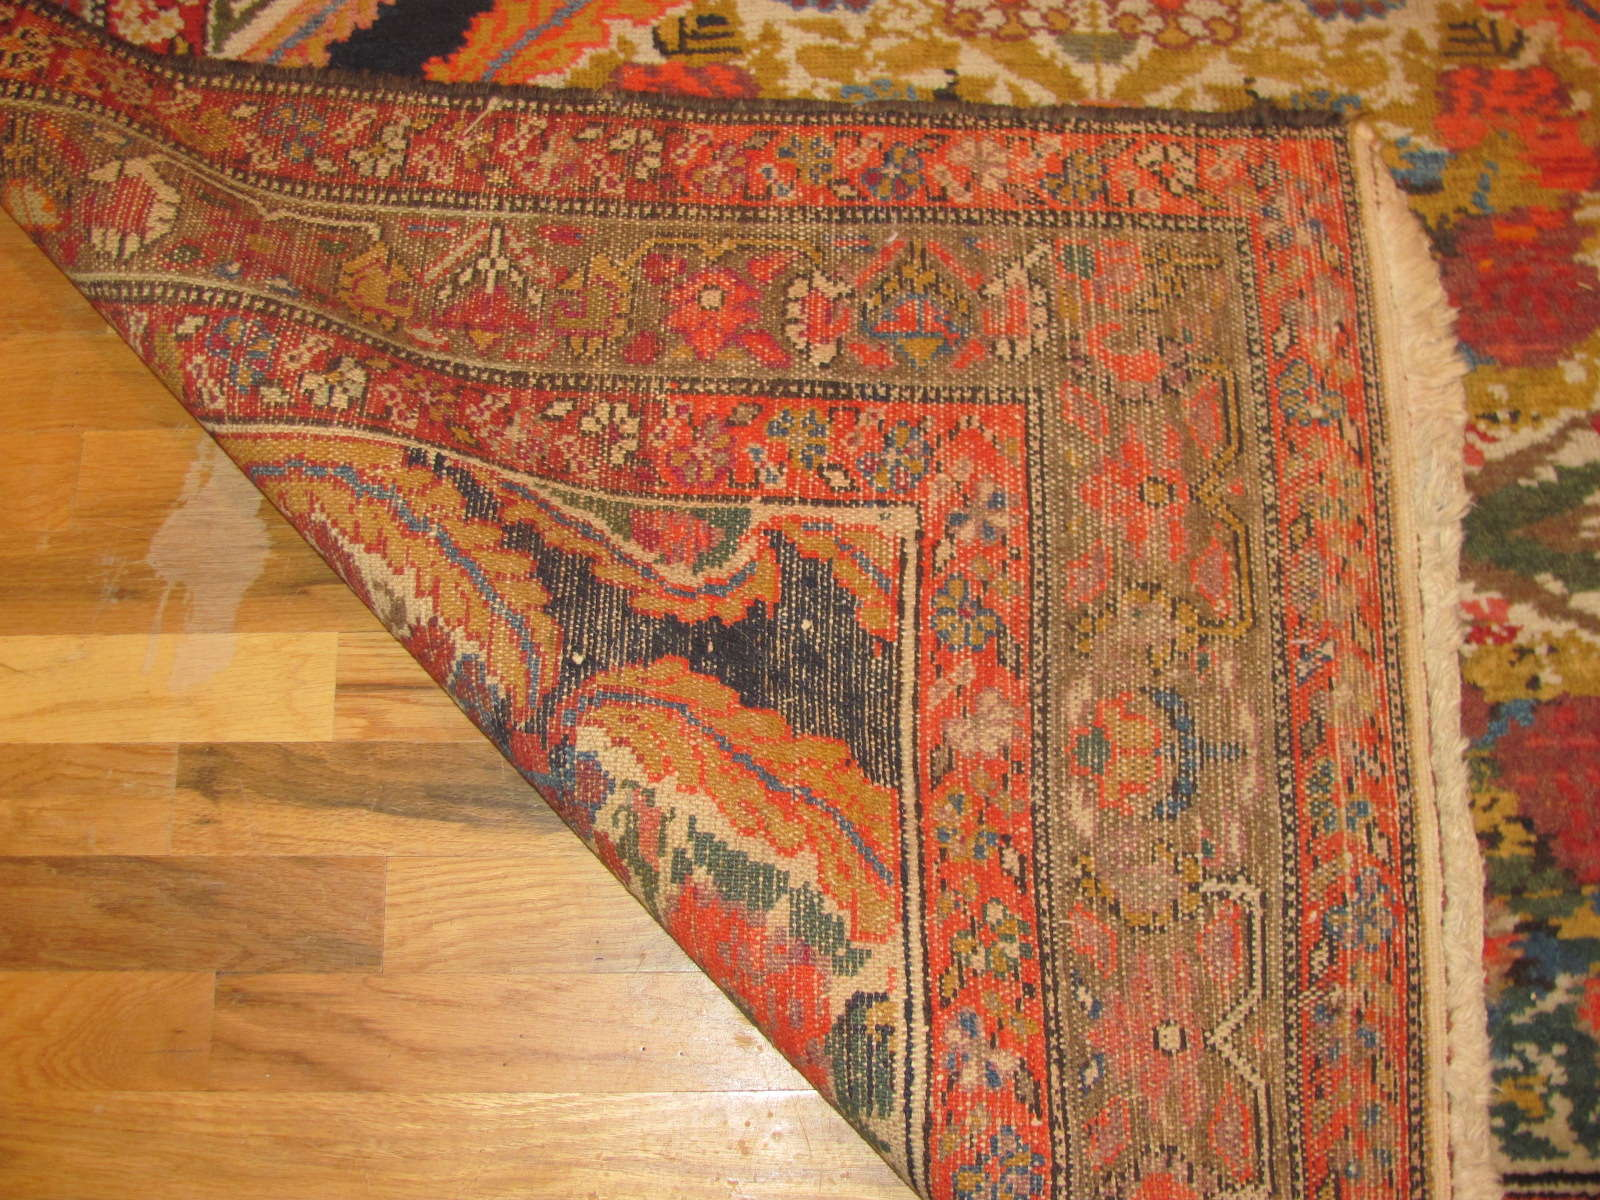 24430 antique persian malayer gallery runner 4,9x11,9 -3